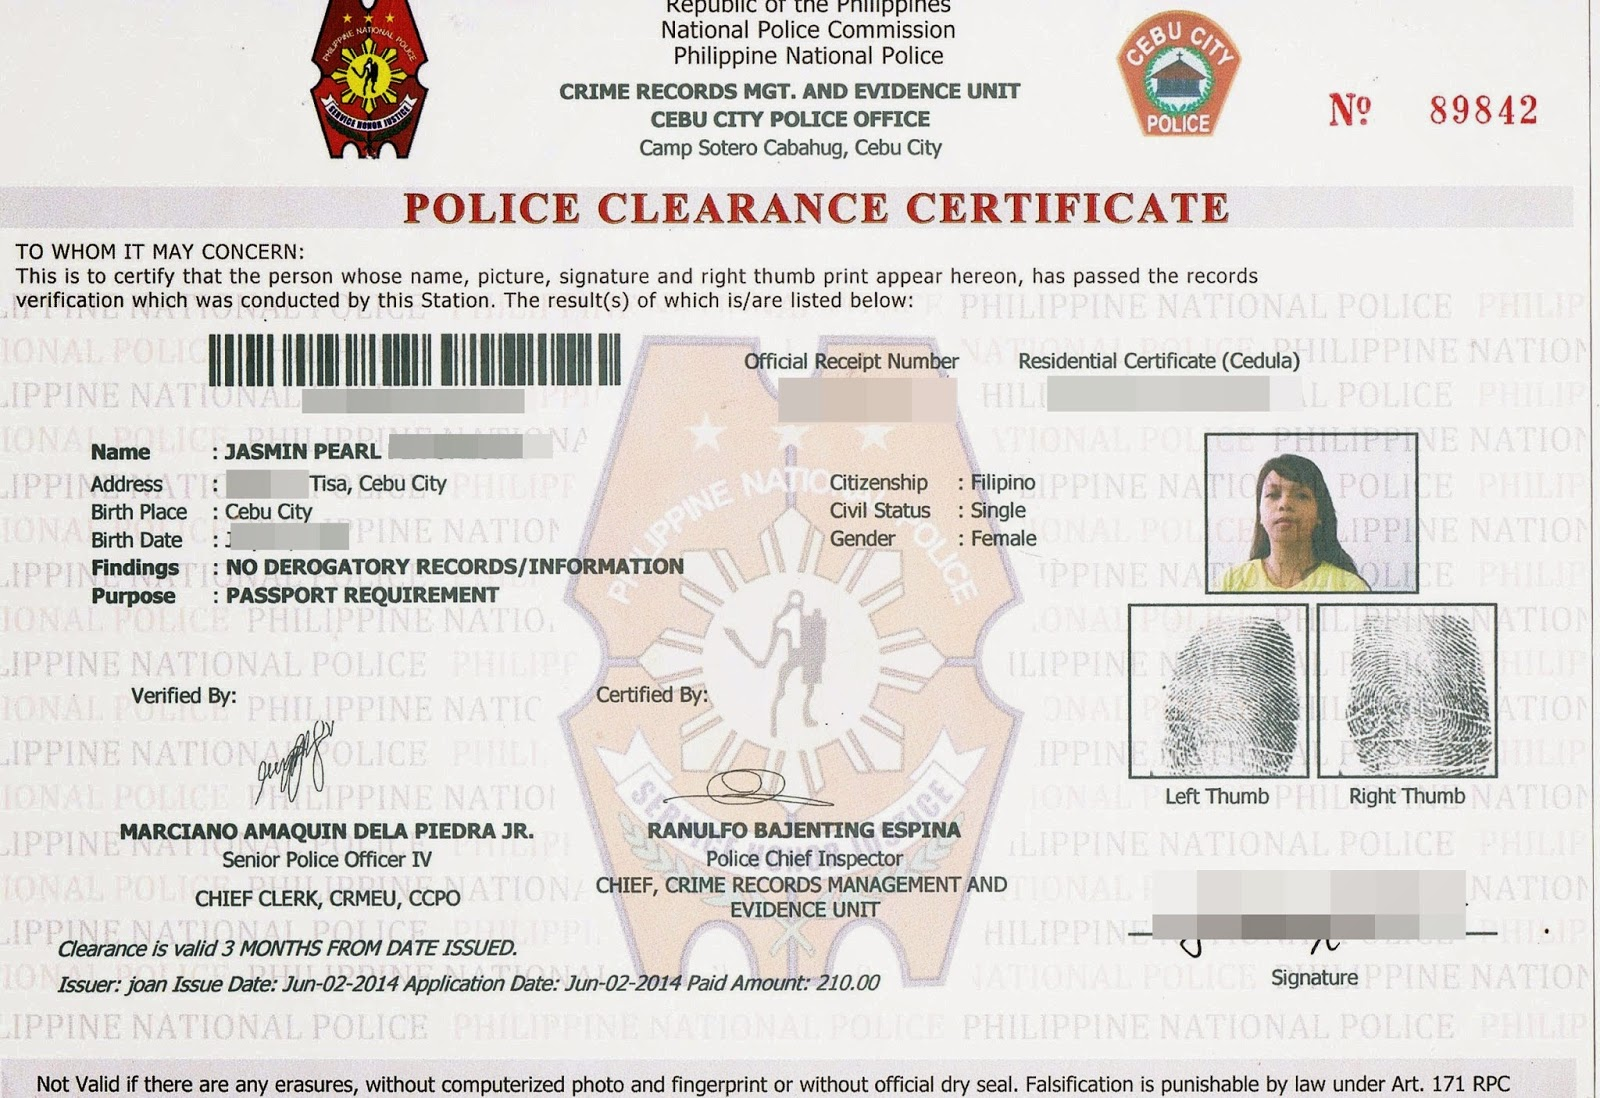 Form new police clearance form for citizenship citizenship for clearance form police for other clearance use as get id police to primary how 1betcityfo Choice Image